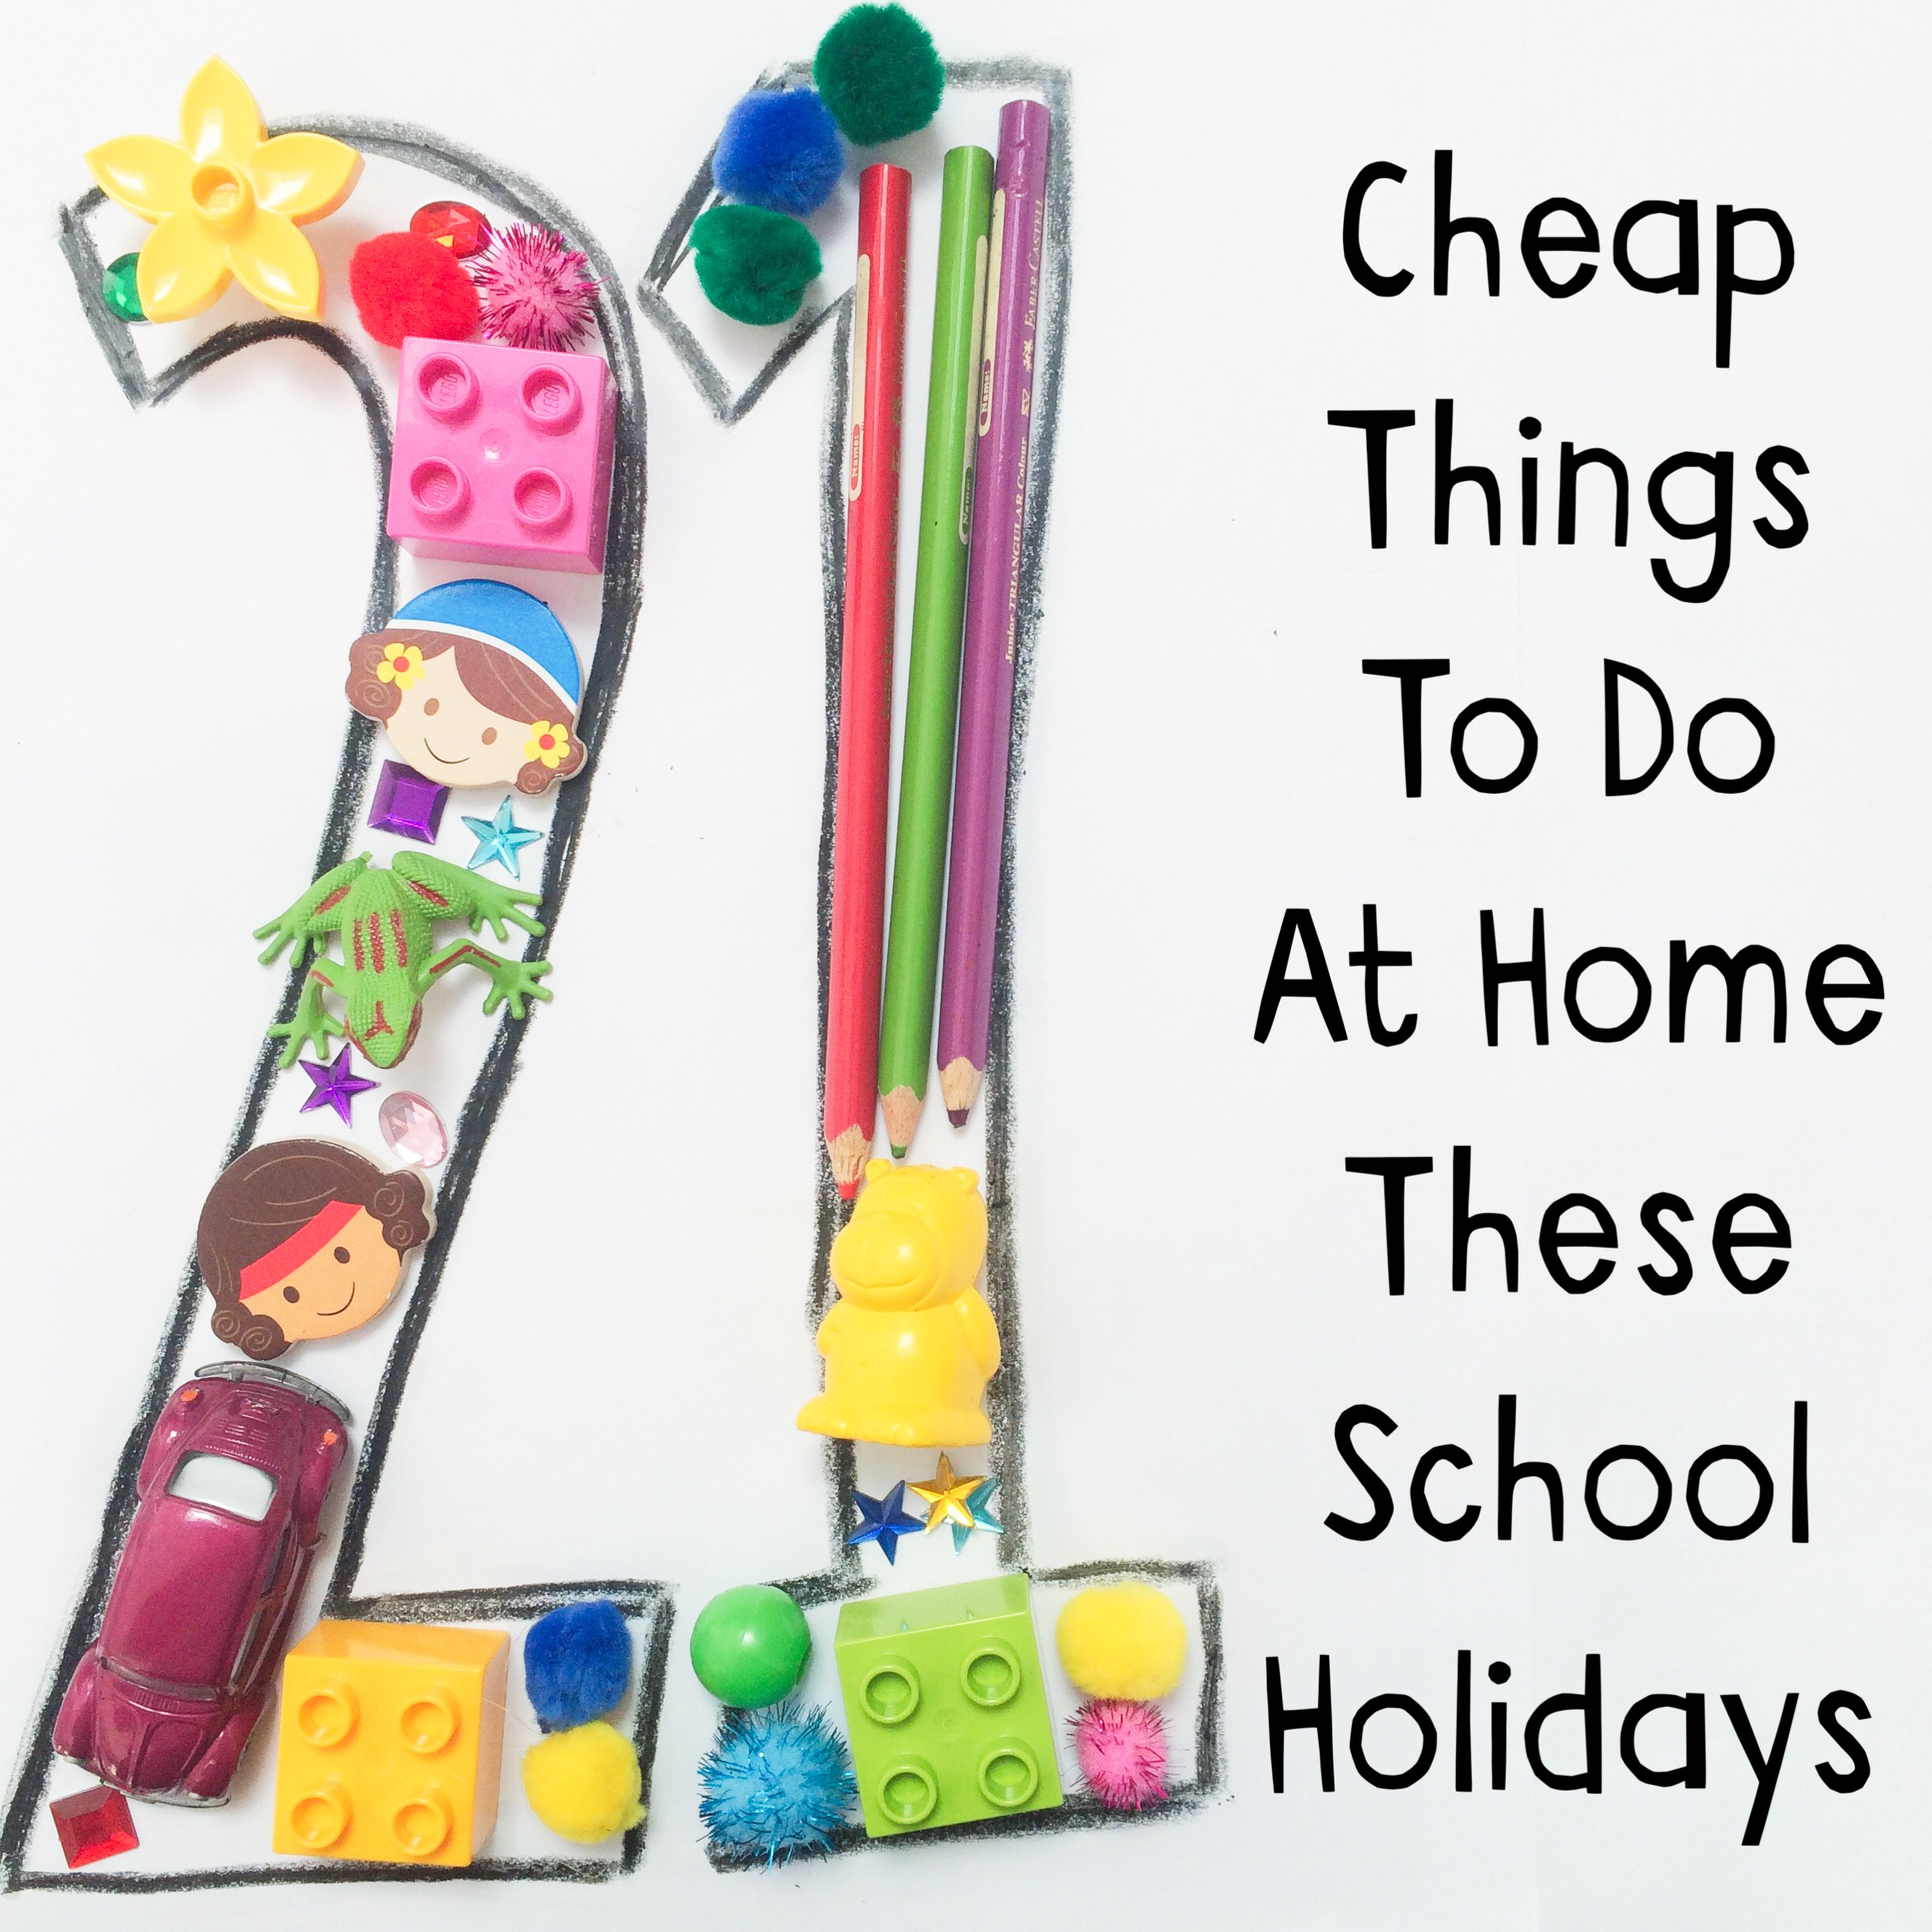 21 Cheap Things To Do At Home These School Holidays - Oh Creative Day